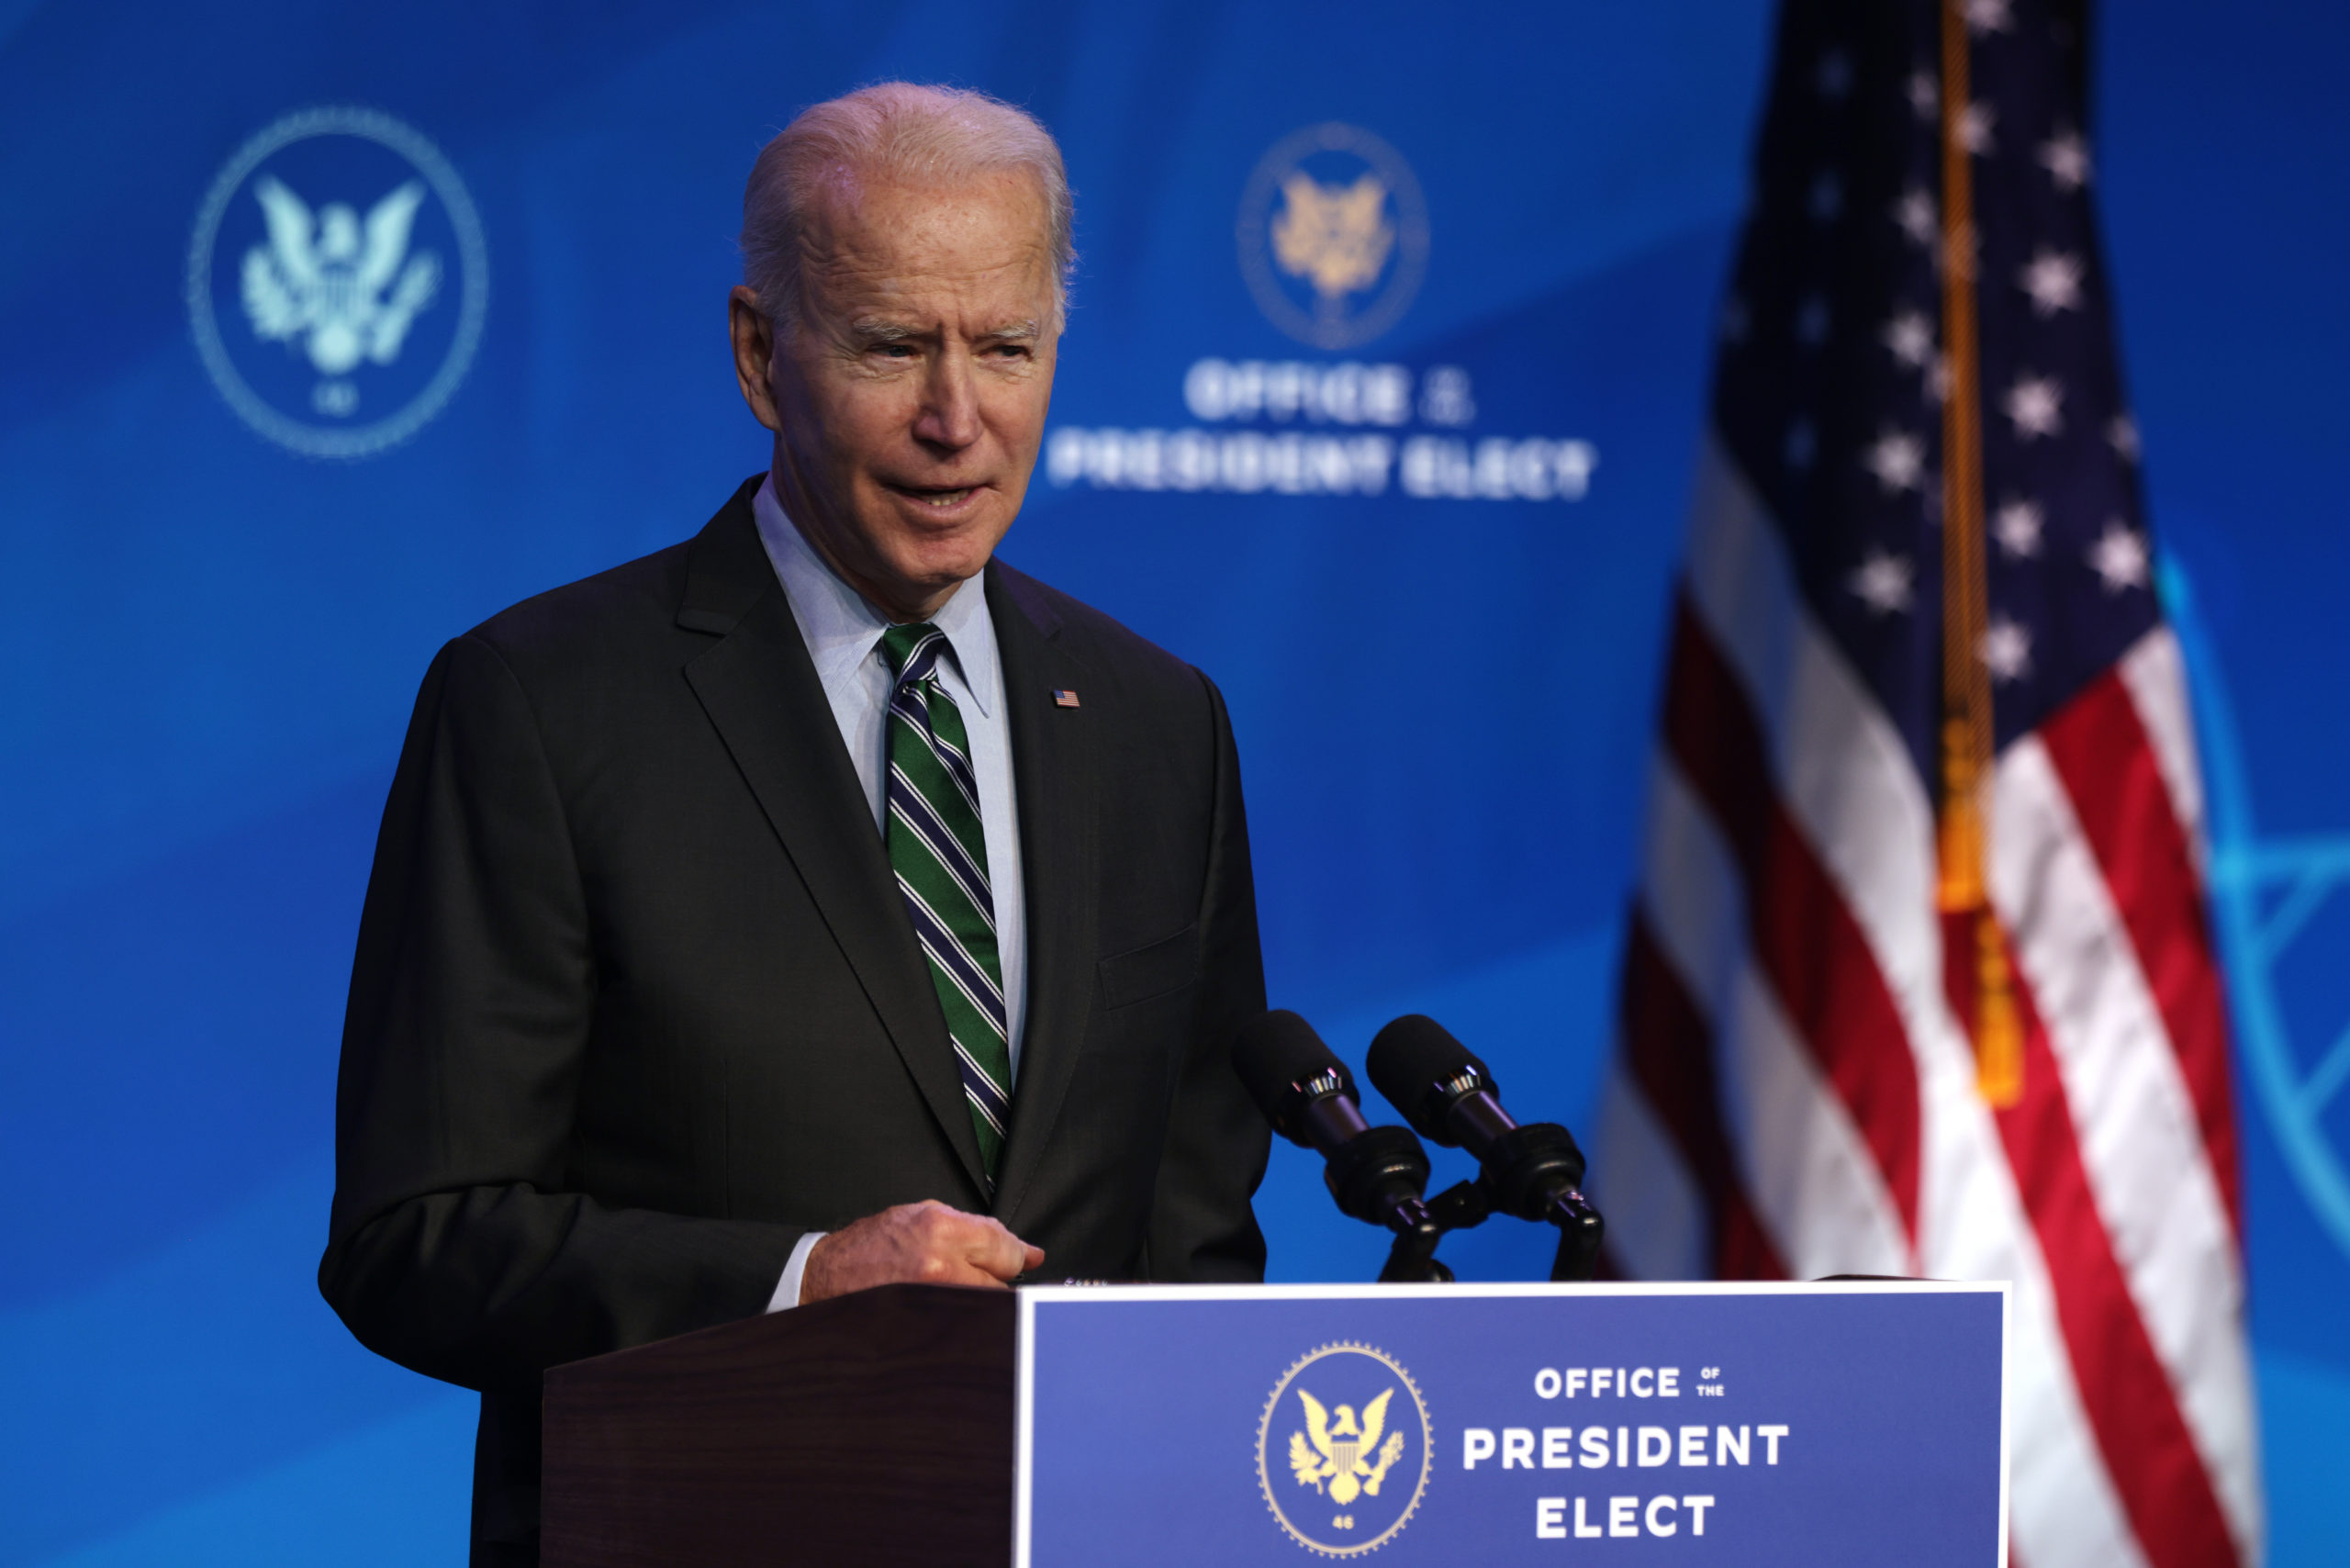 WILMINGTON, DELAWARE - JANUARY 16: U.S. President-elect Joe Biden speaks during an announcement January 16, 2021 at the Queen theater in Wilmington, Delaware. President-elect Joe Biden has announced key members of his incoming White House science team. (Photo by Alex Wong/Getty Images)